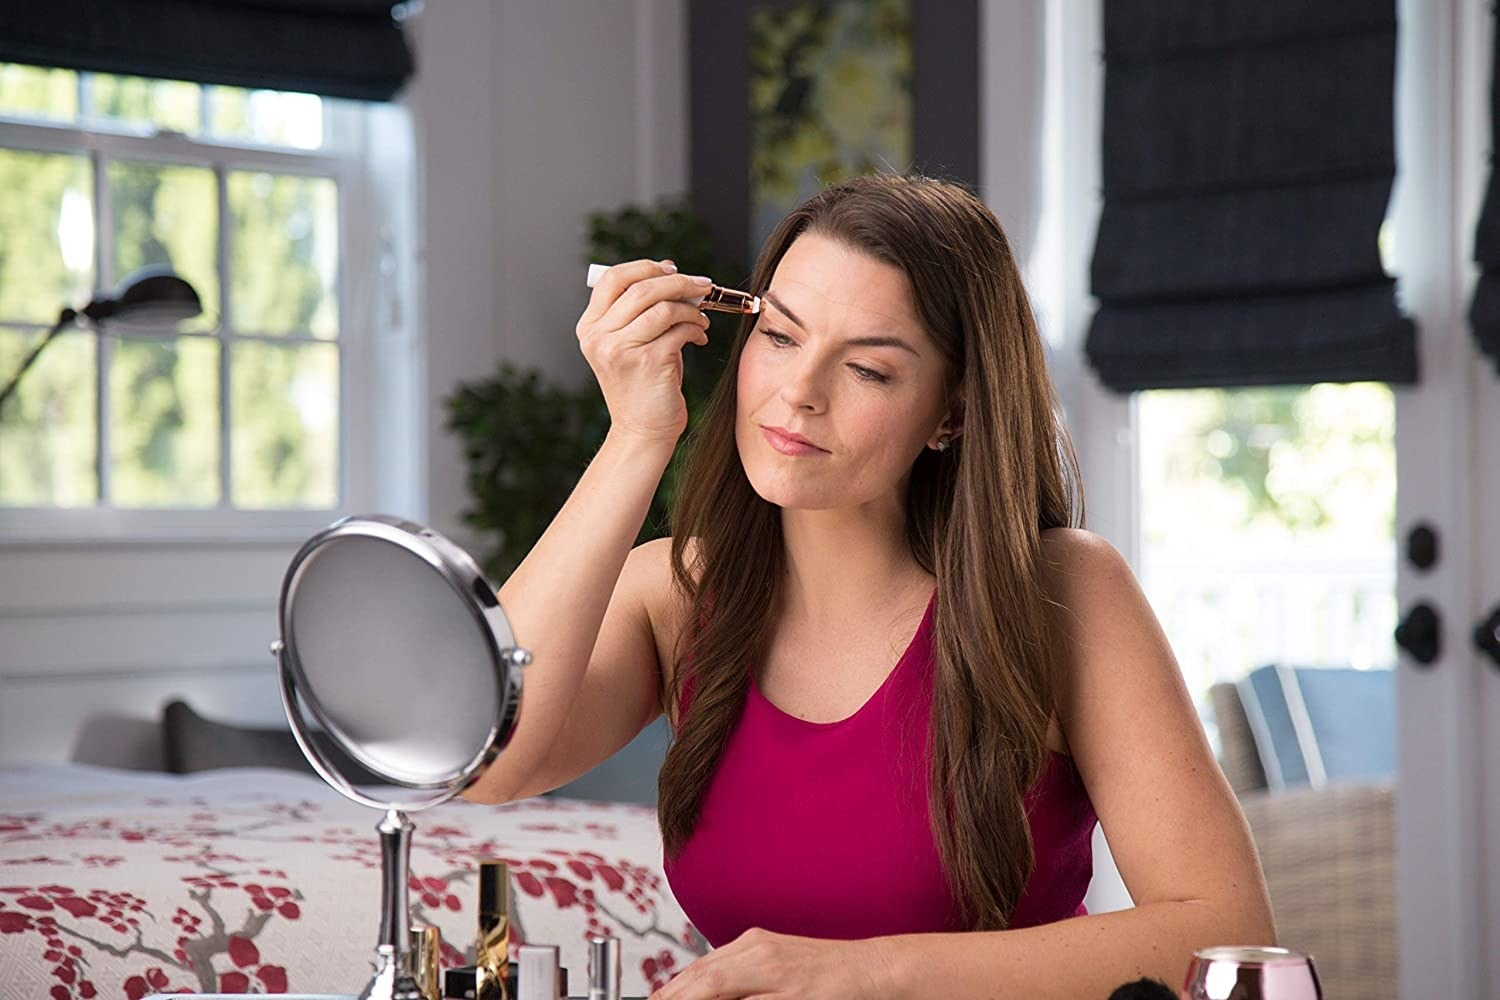 A person using the Flawless Eyebrows gadget to clean up their eyebrows